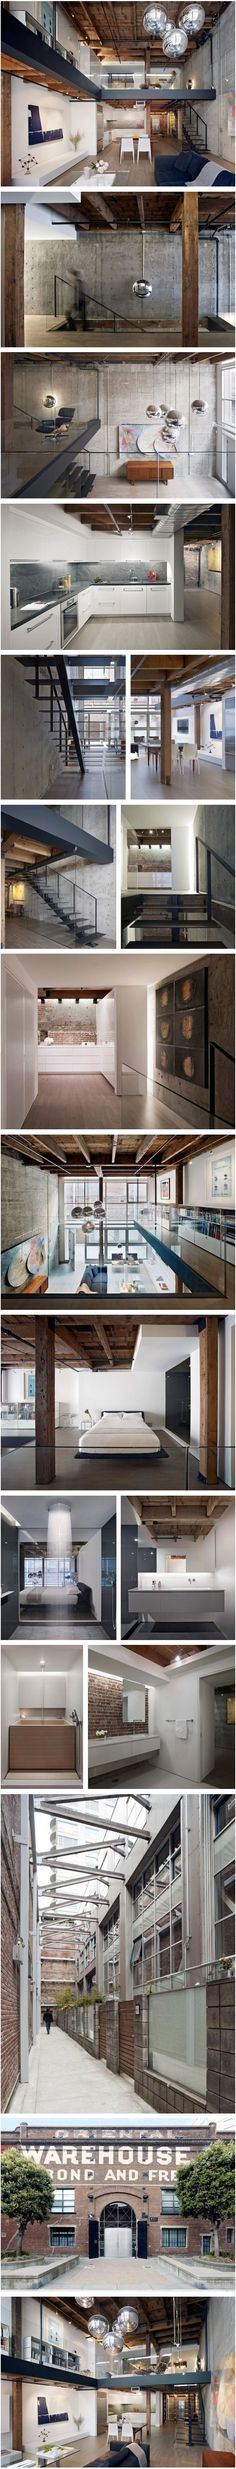 Renovated Oriental Warehouse | Zeutch